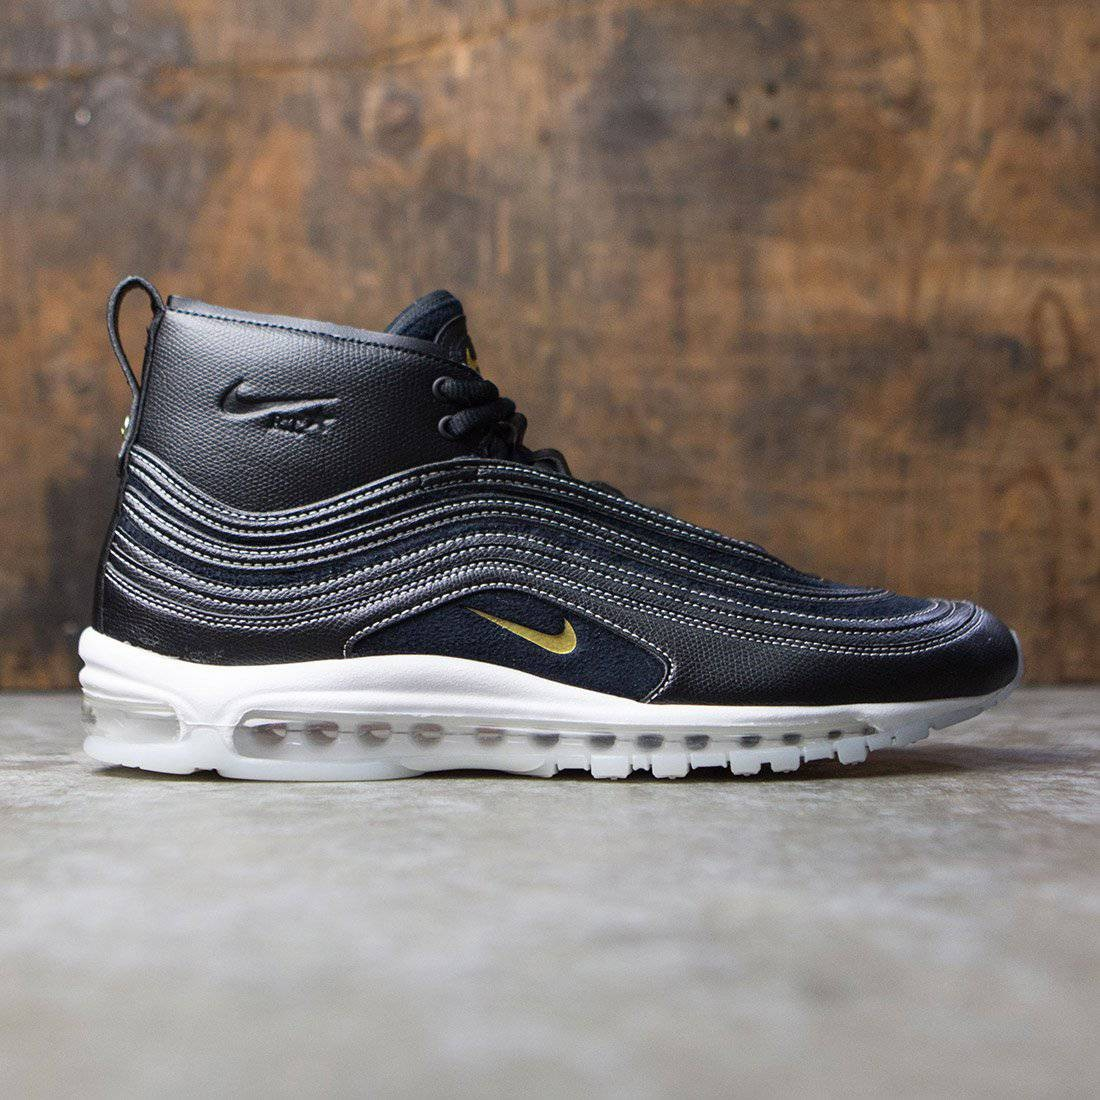 nikelab riccardo tisci men air max 97 mid black metallic gold anthracite  white 6420ec94b1